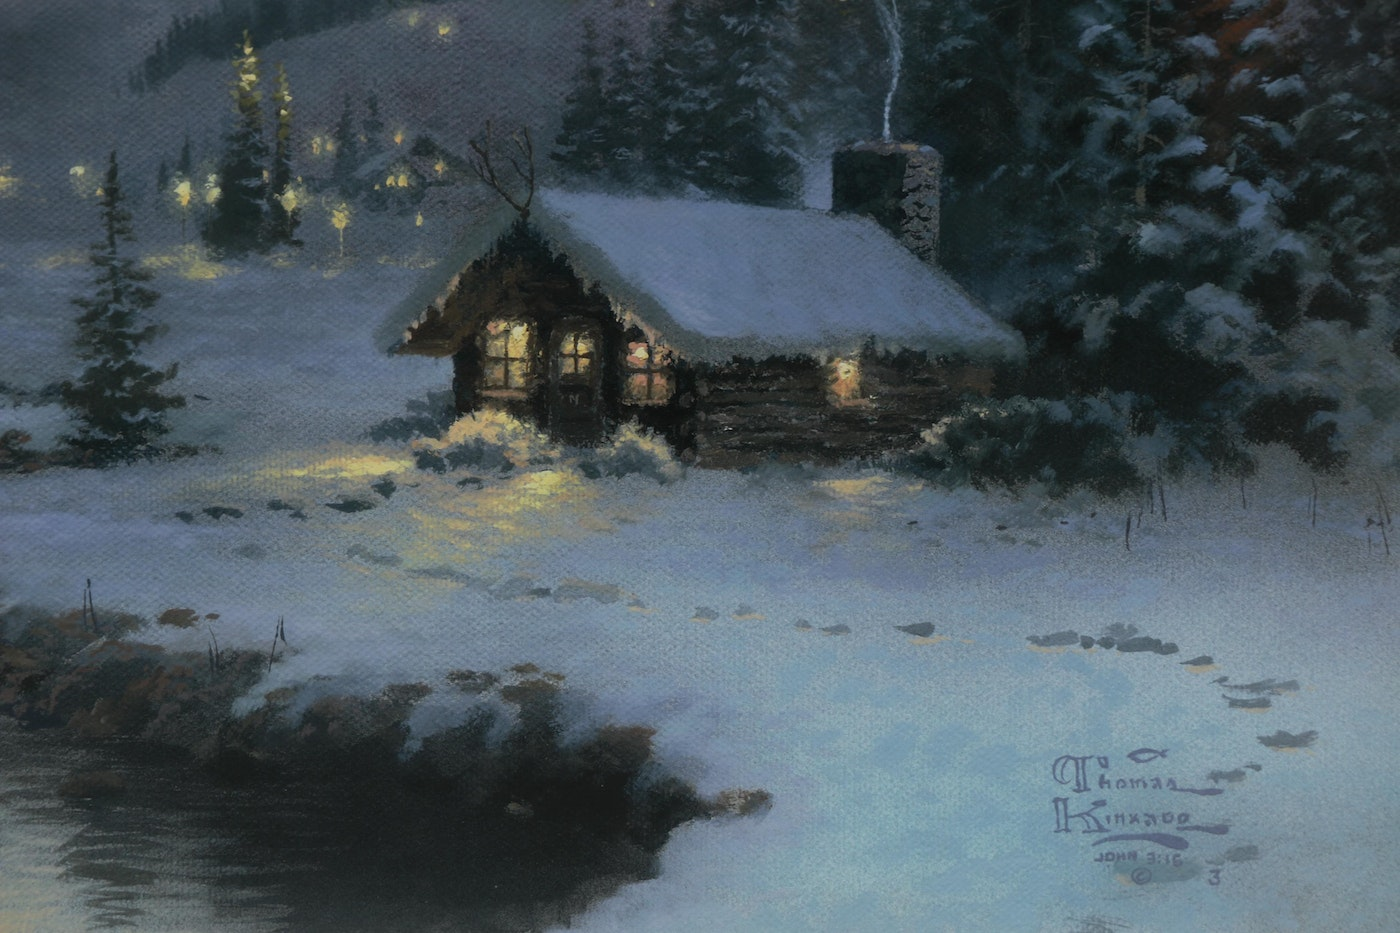 Commemorative Offset Lithograph After Thomas Kinkade